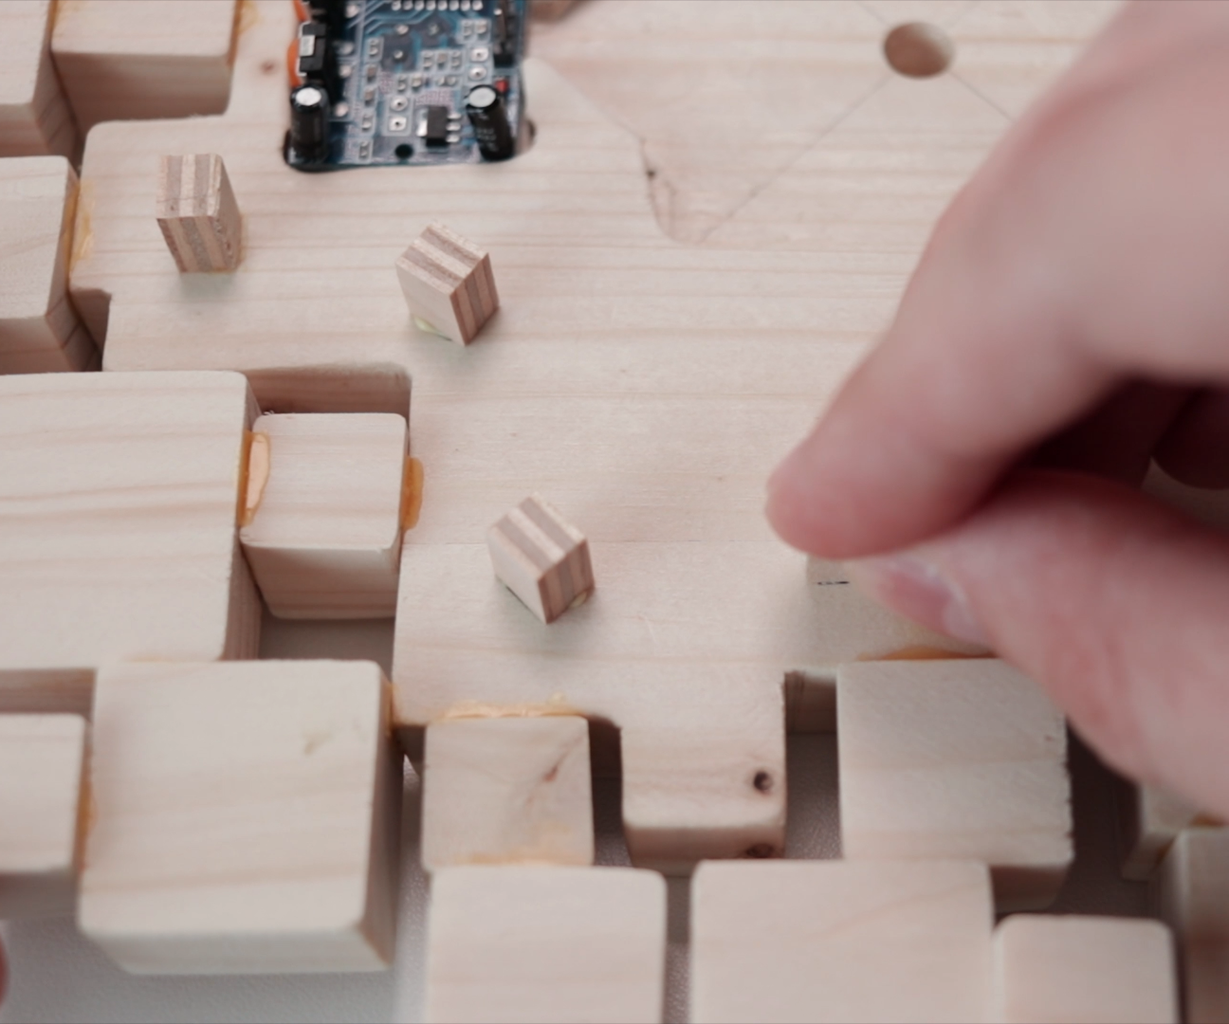 Cutting and Gluing Small Blocks for the Leds